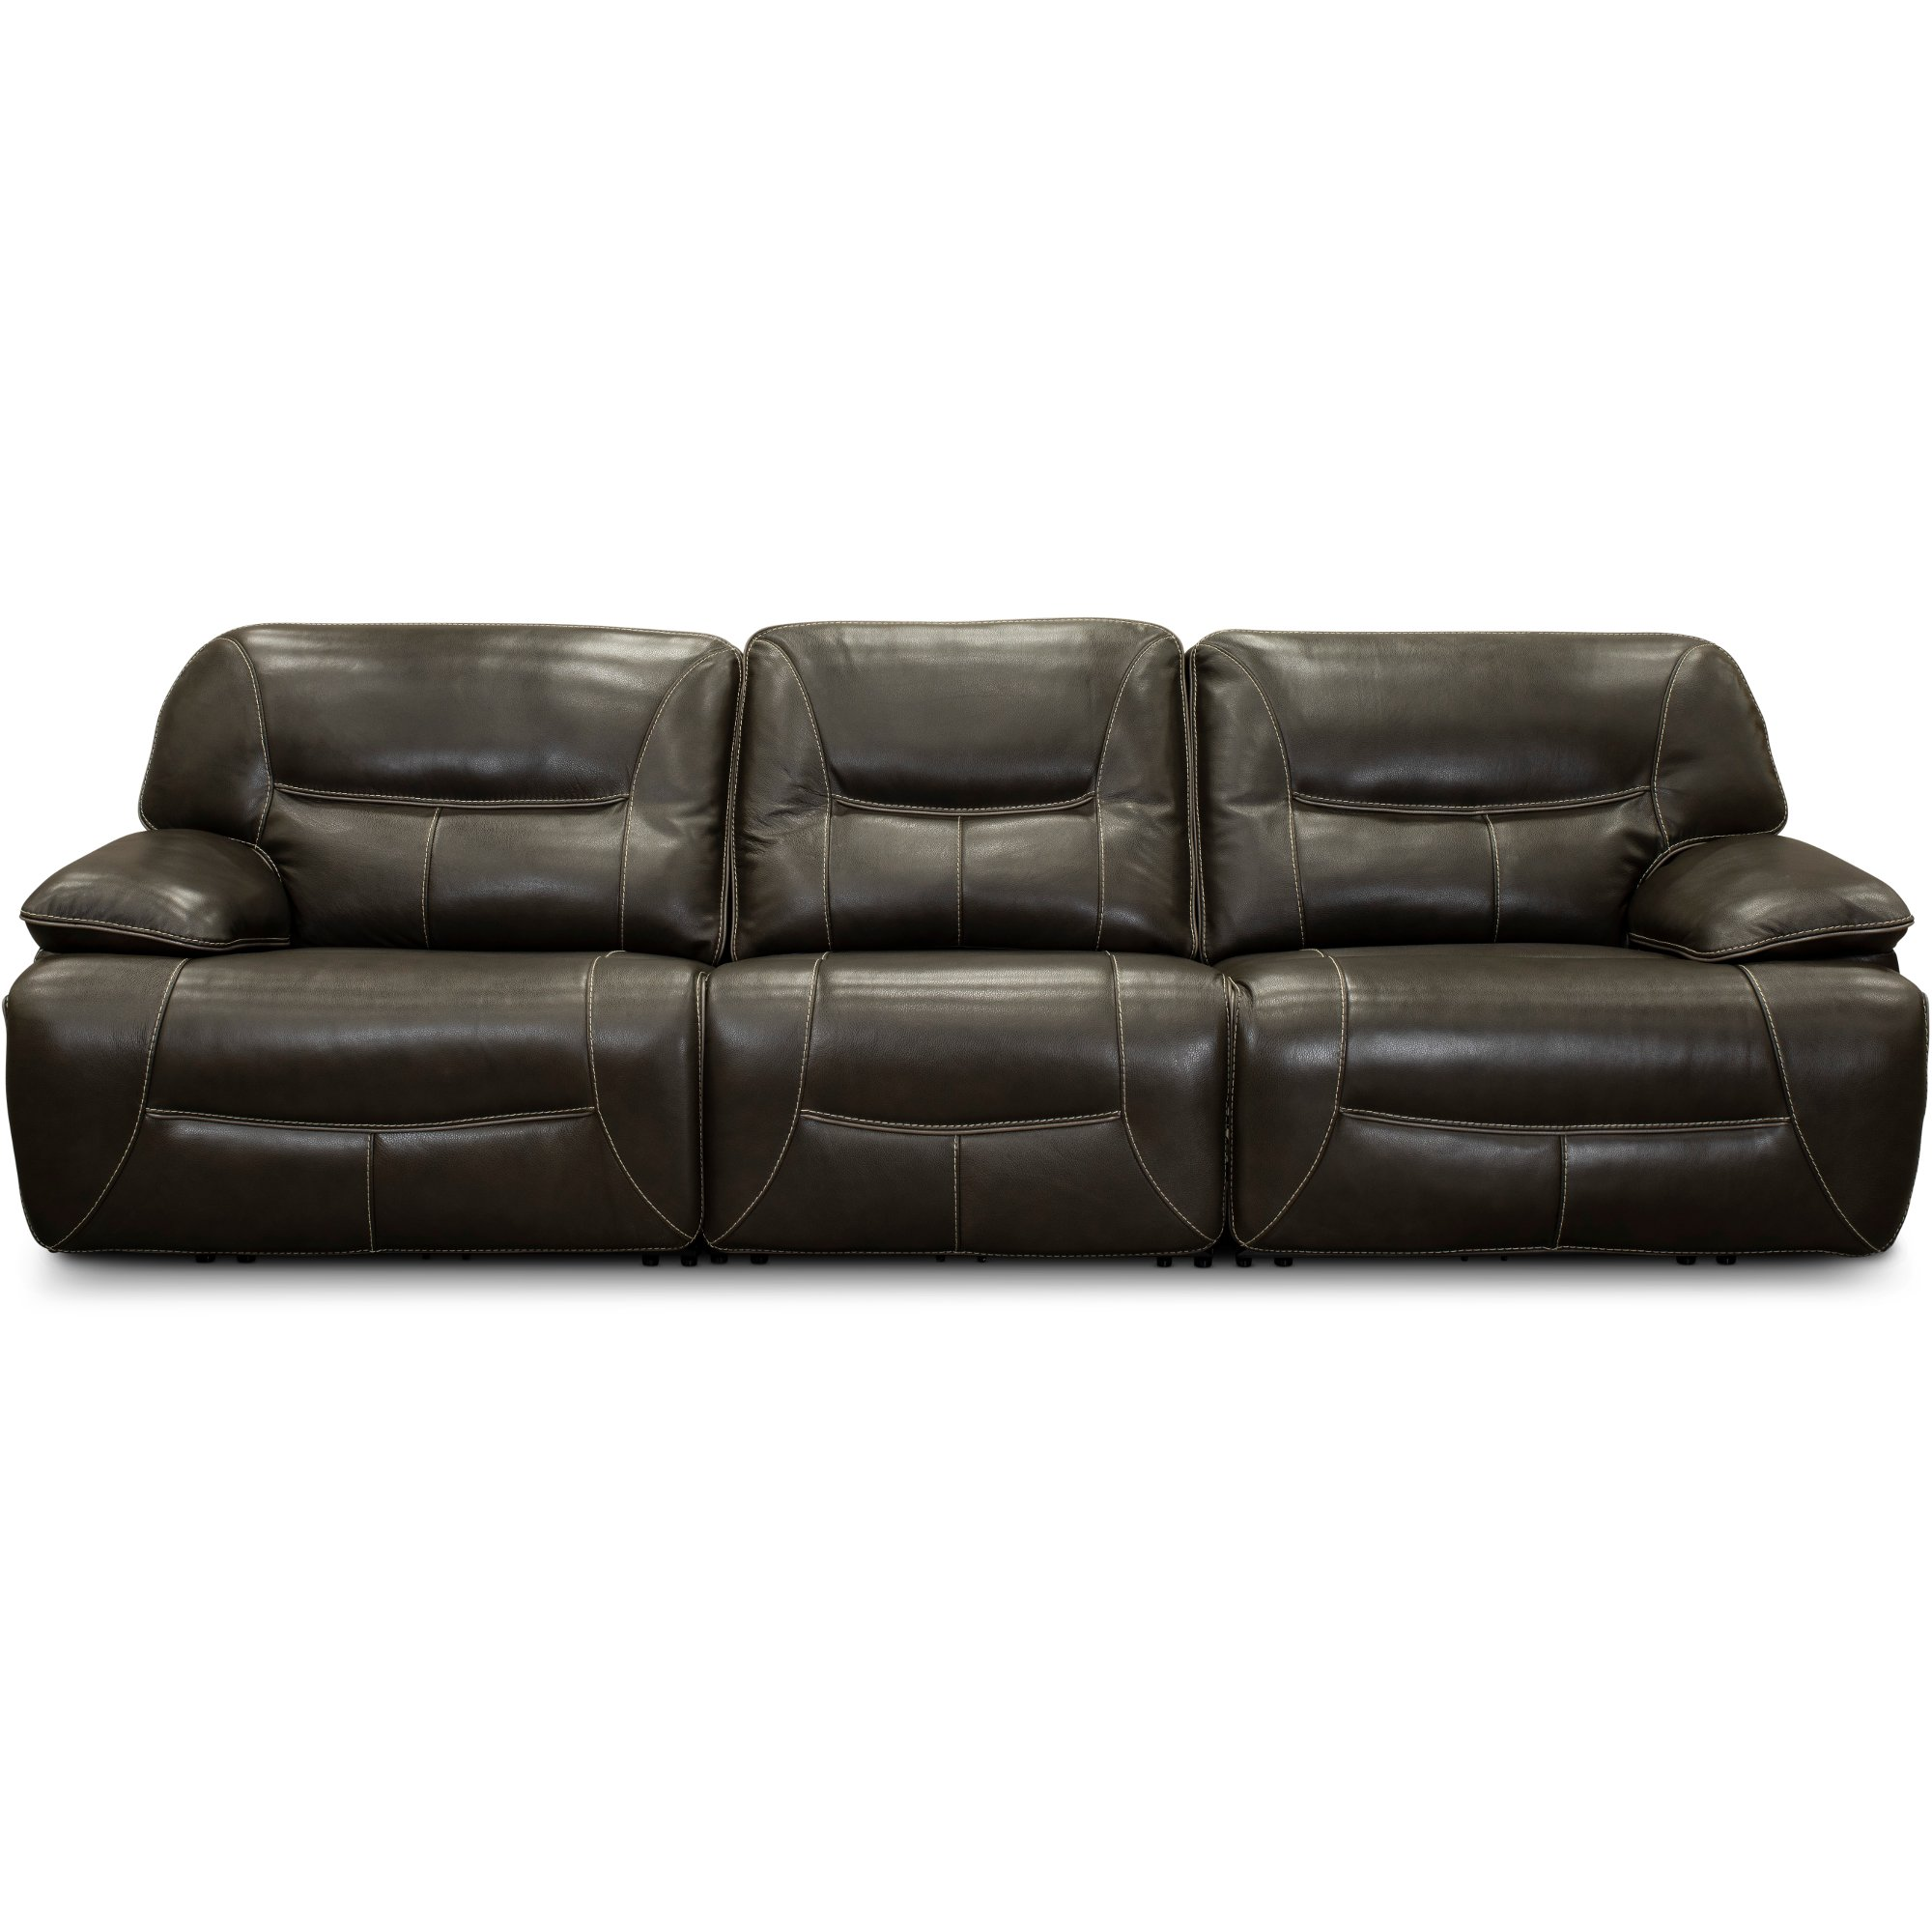 Steel Gray Leather Match Triple Power Reclining Sofa   Max